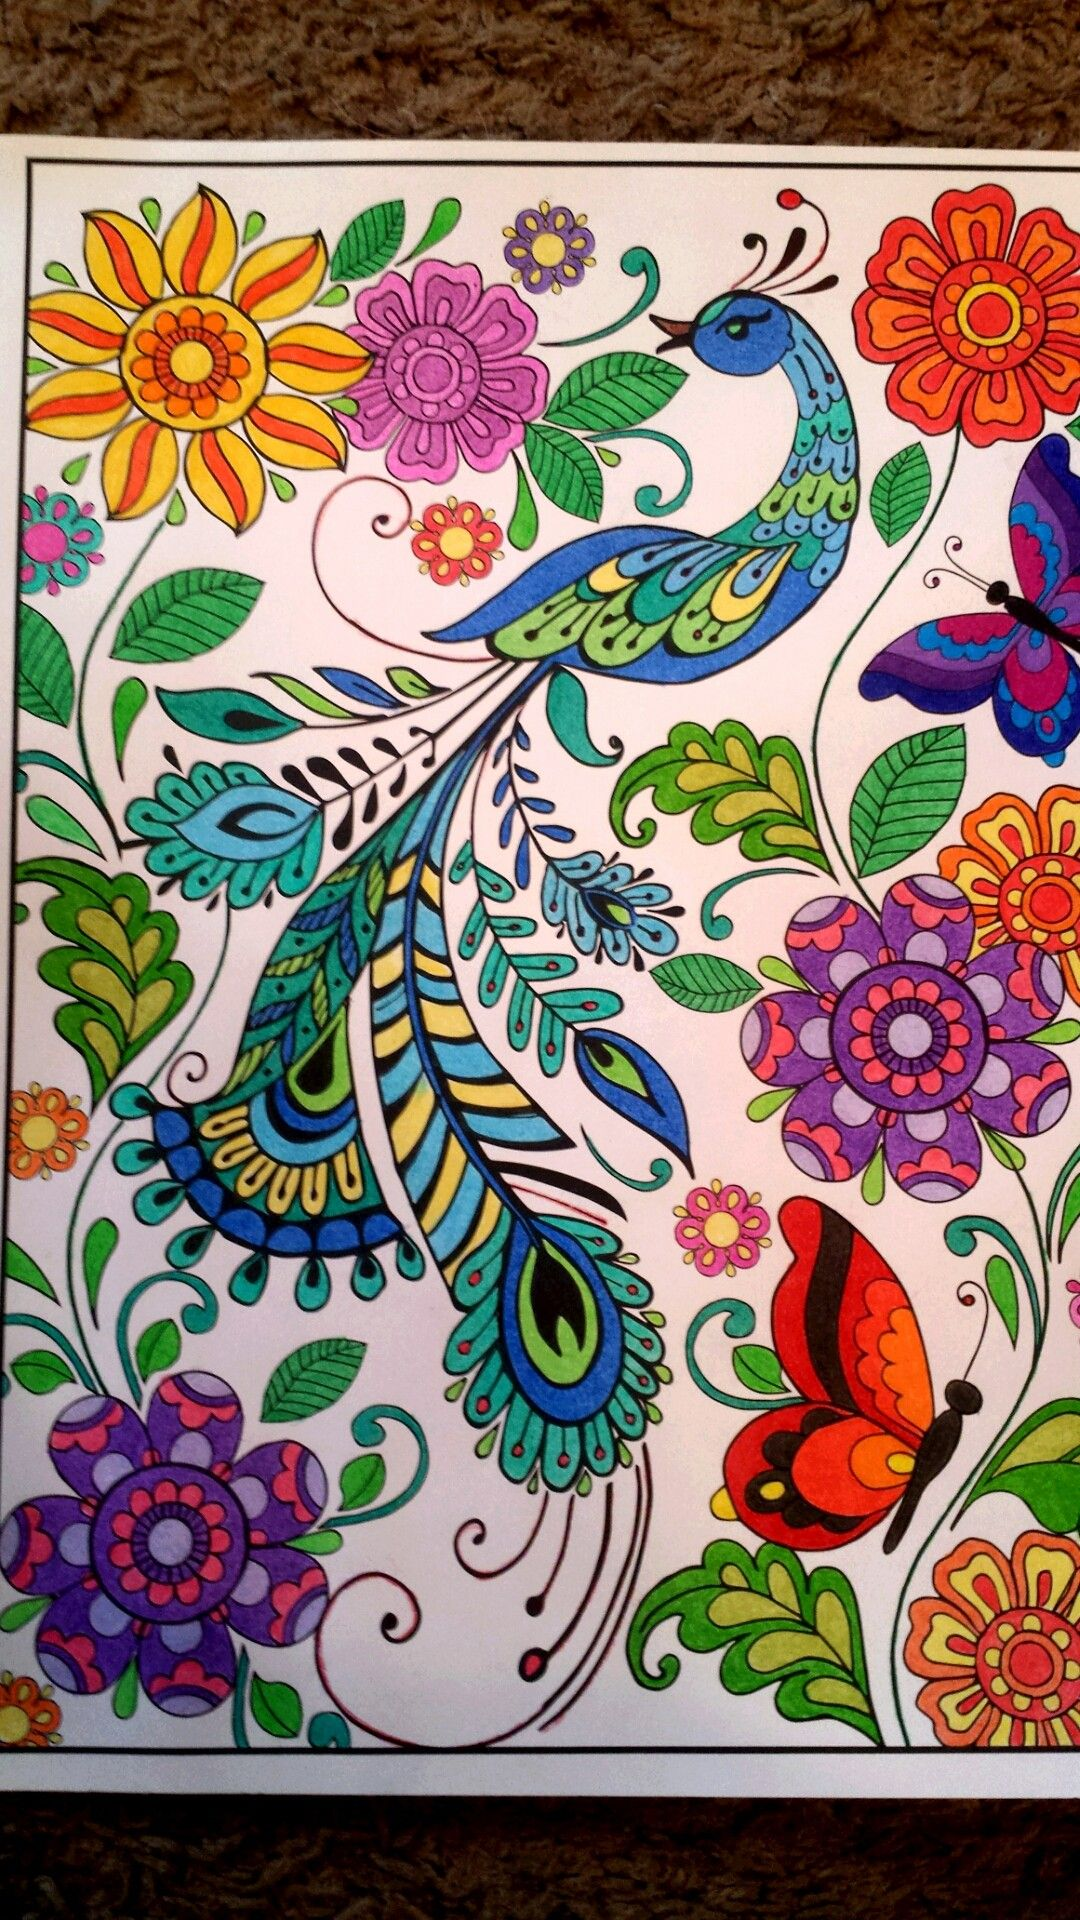 PEACOCKS FOR COLORING image by Becky Braswell-White ...